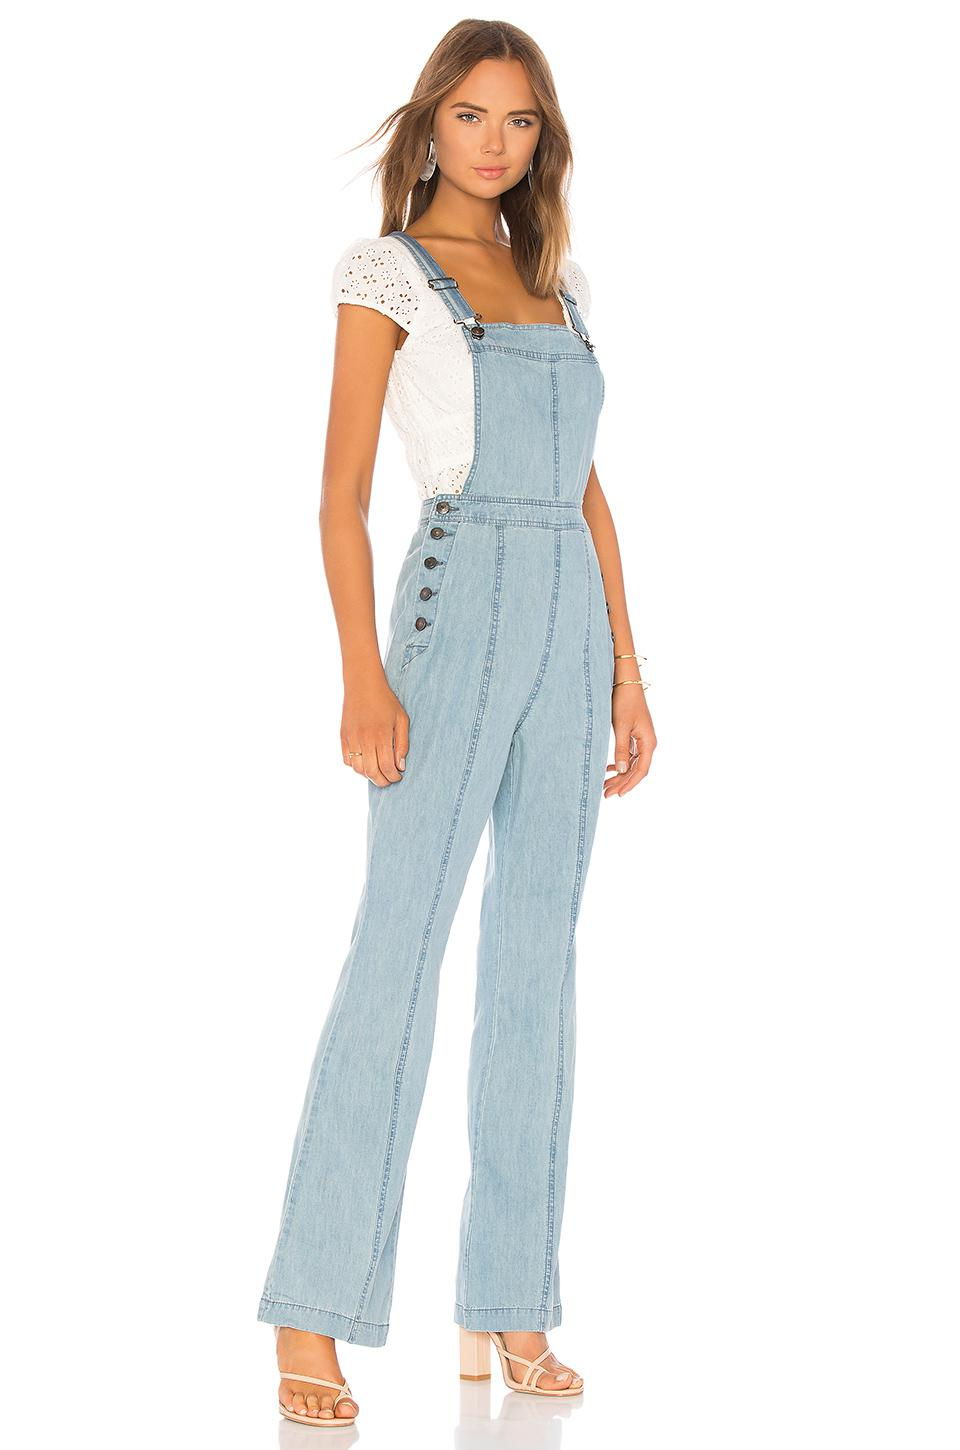 b6fd2d762337 Lyst - Cupcakes And Cashmere Meliani Light Wasted Denim Overall in ...